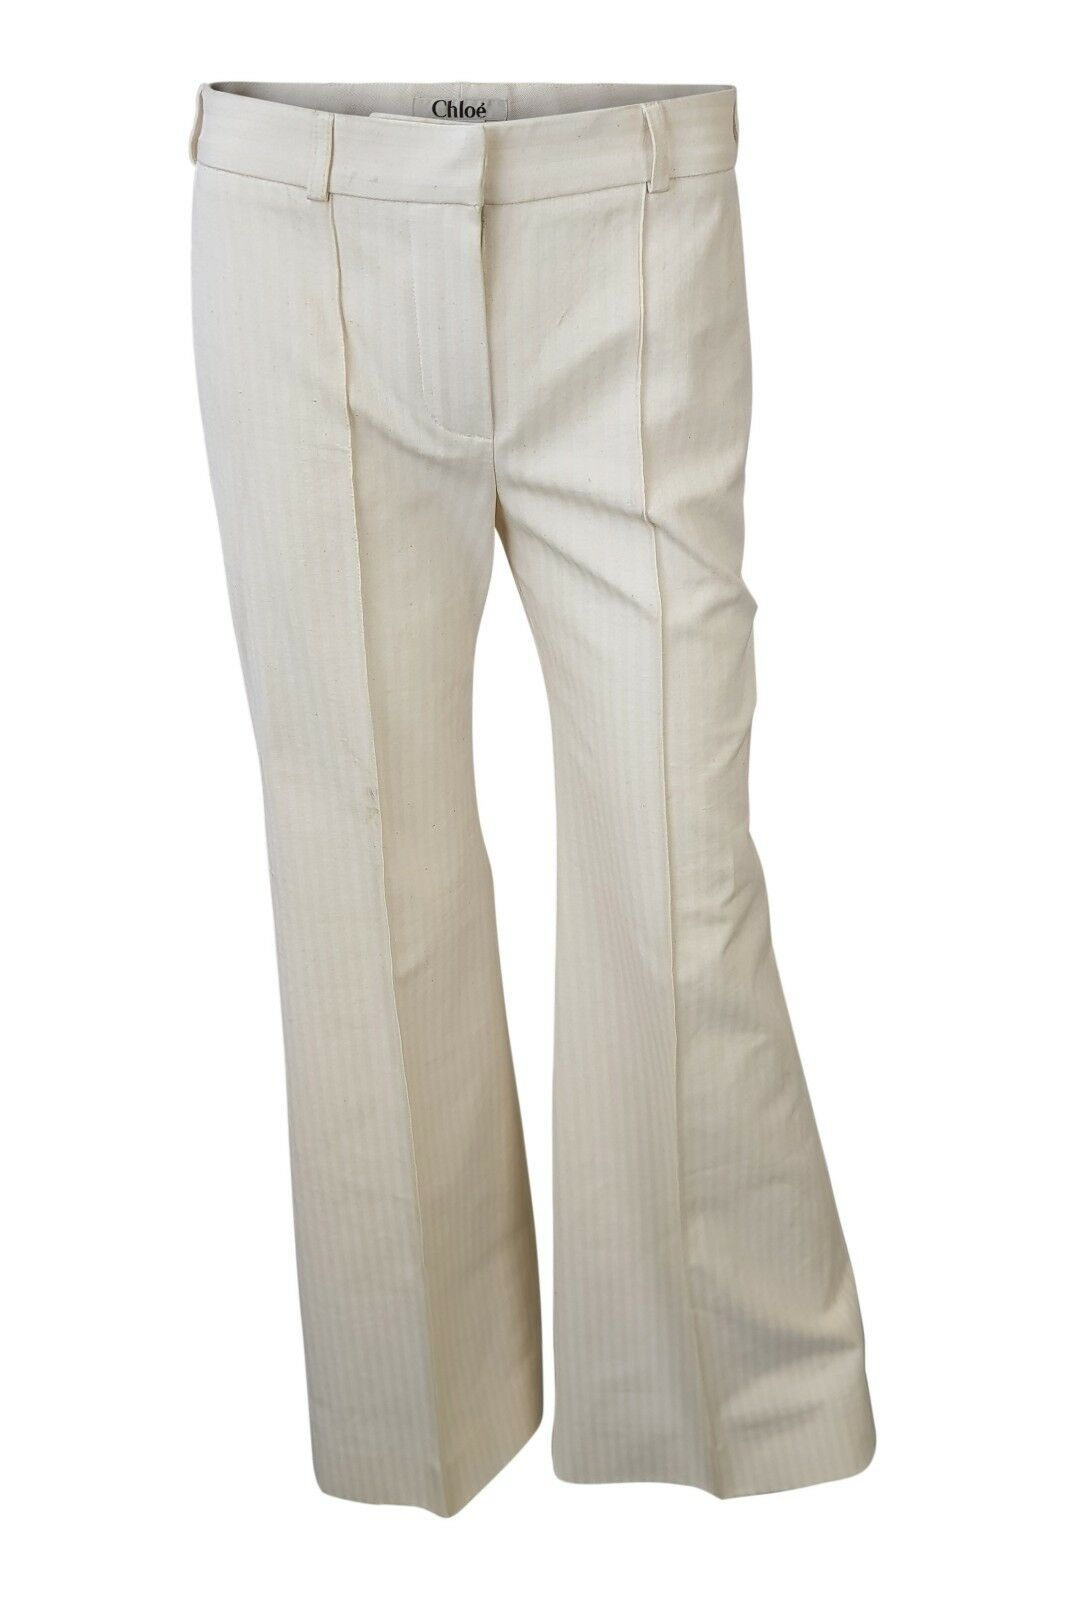 CHLOE COTTON PIN STRIPE BOOTLEG TROUSERS (T 36)